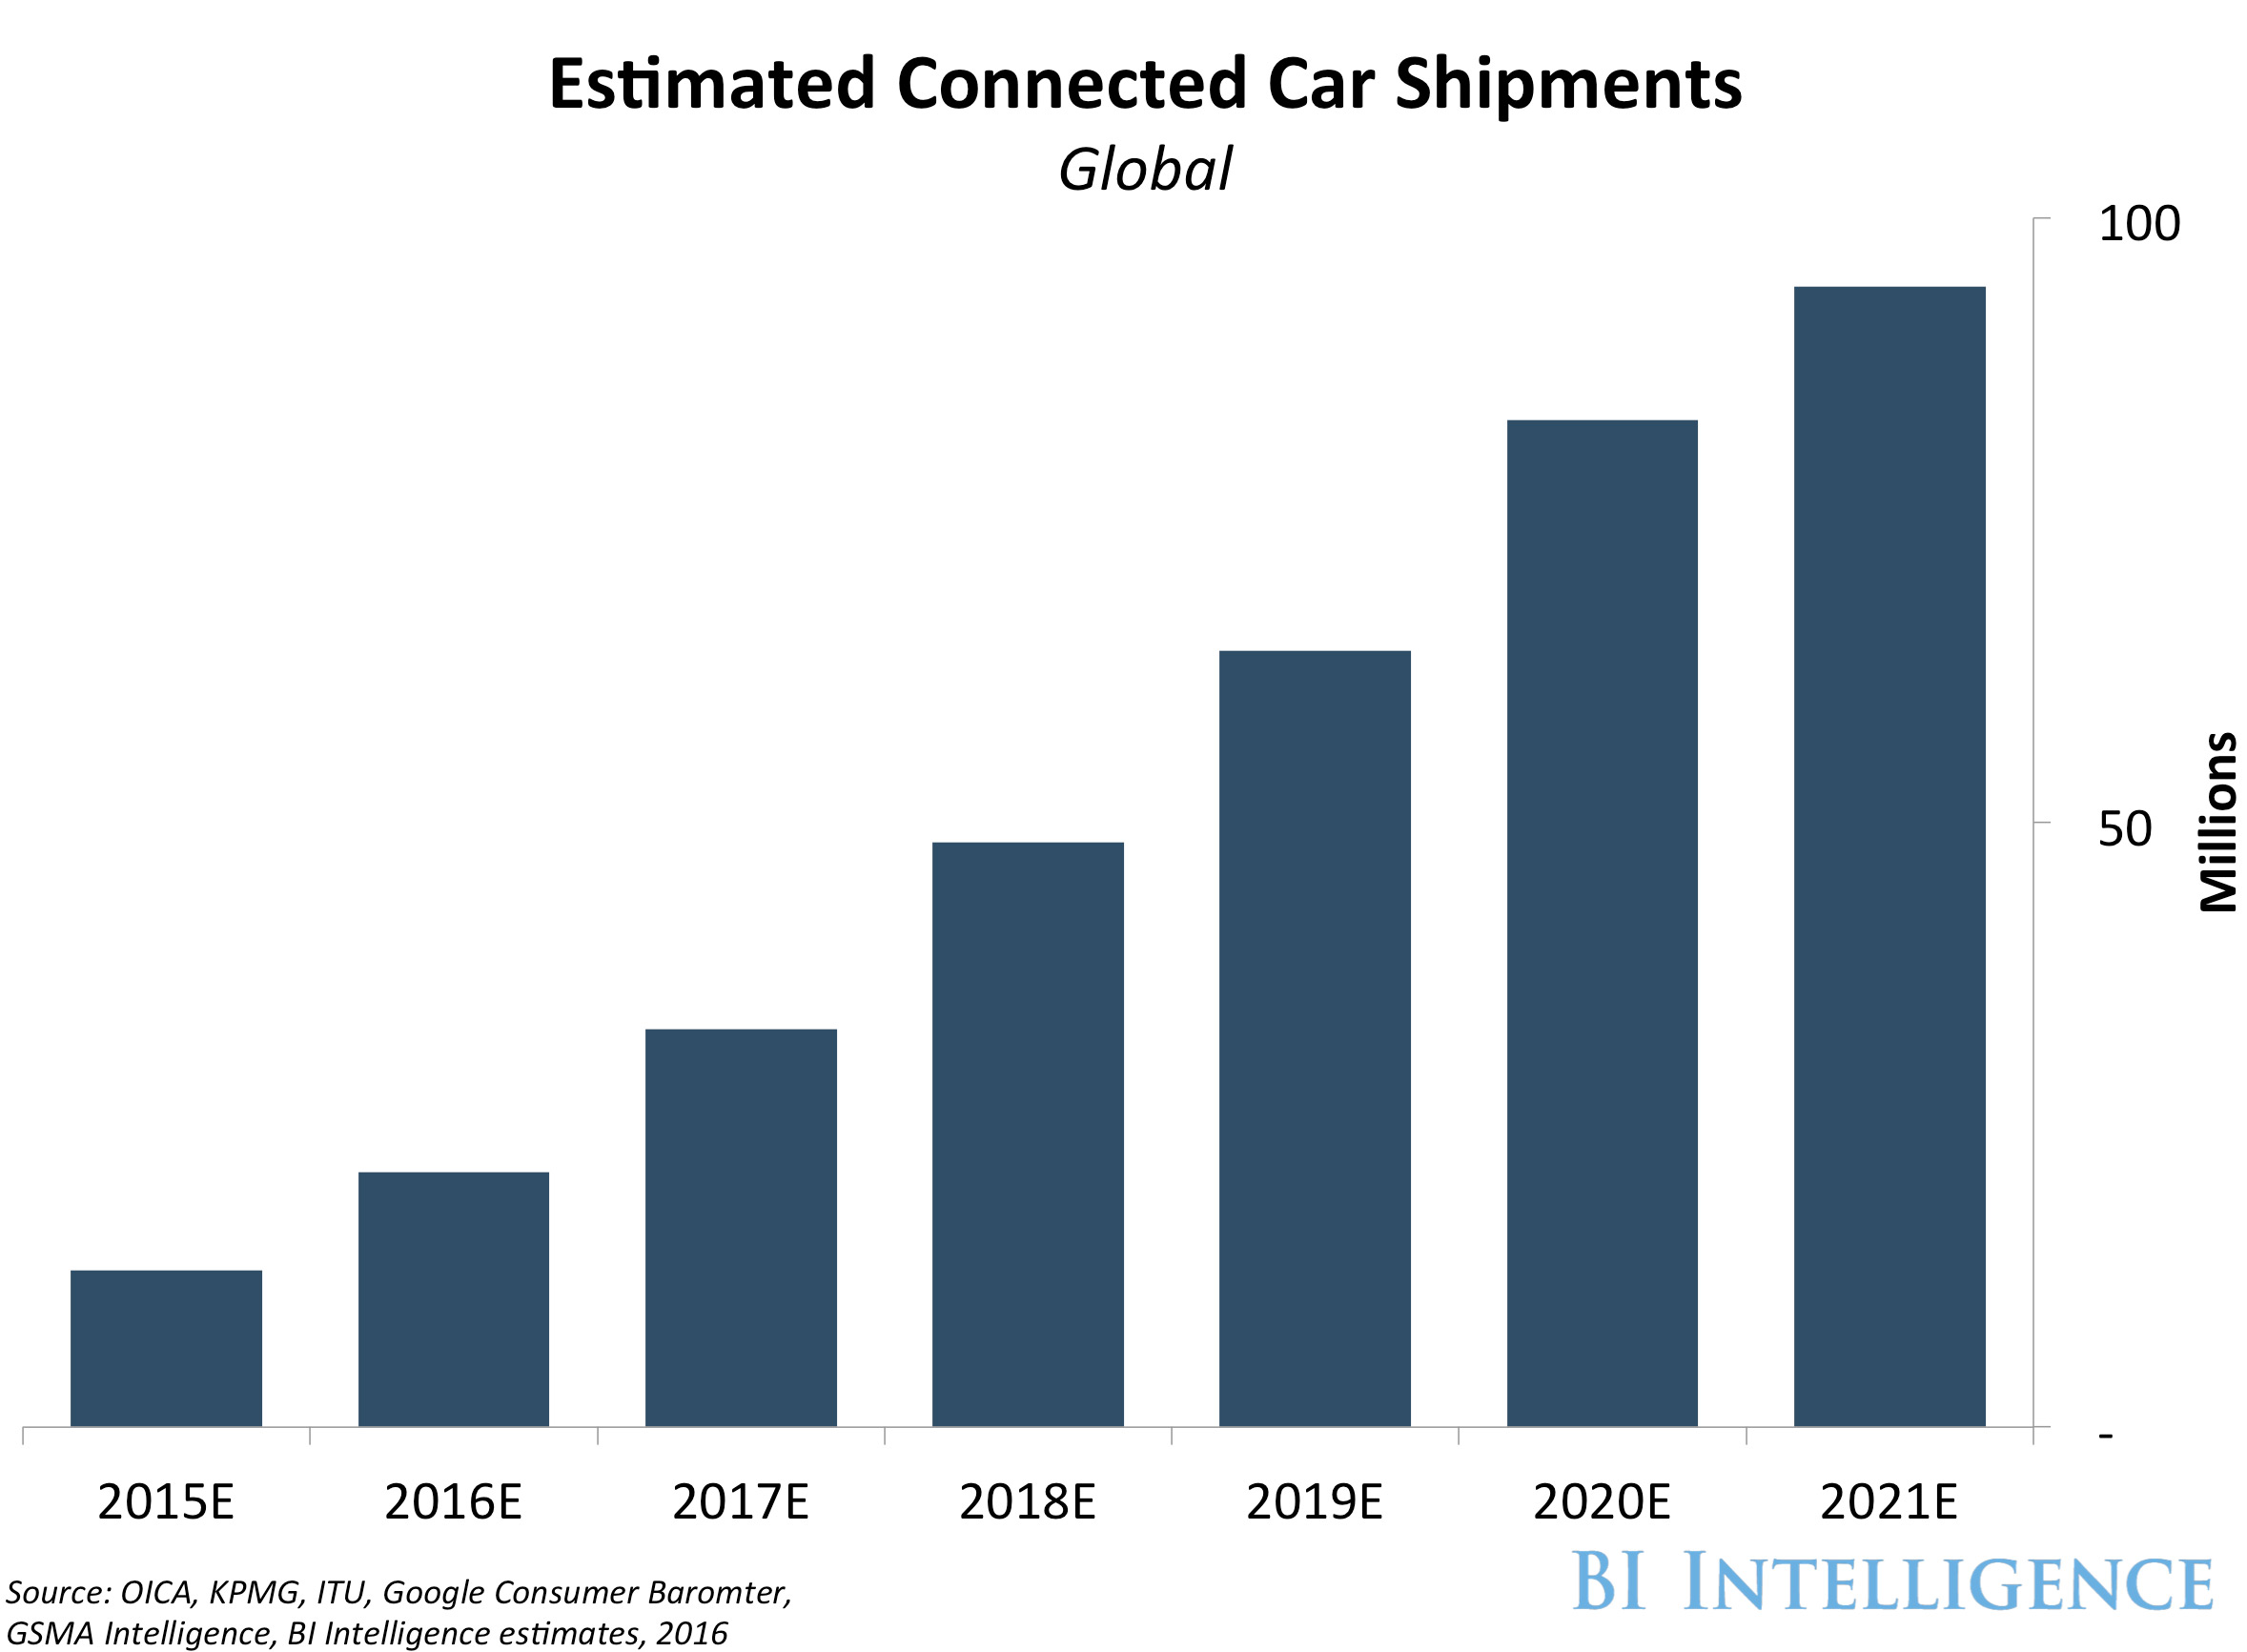 BI Intelligence connected cars estimated 2021